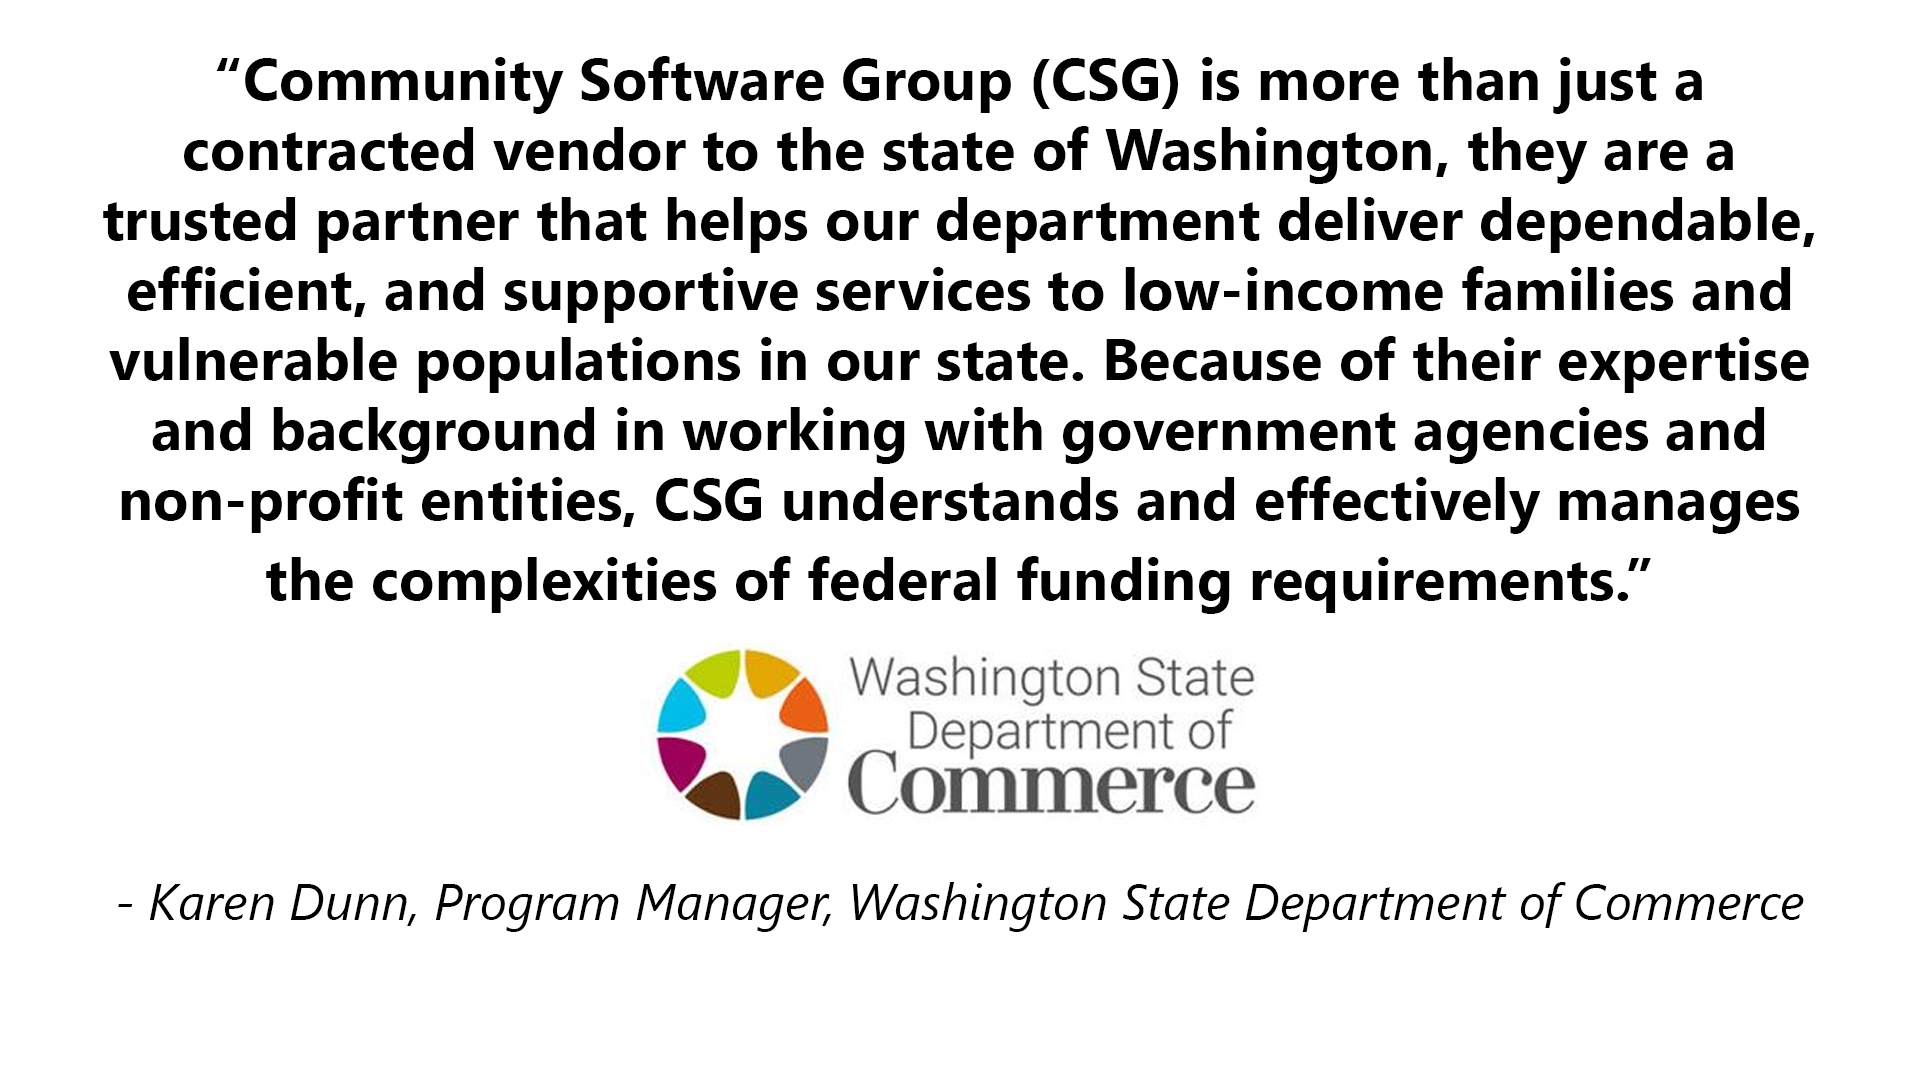 Community Software Group is more than just a contracted vendor to the state of Washington, they are a trusted partner that helps our department deliver dependable, efficient, and supportive services to low-income families and vulnerable populations in our state. Because of their expertise and background in working with government agencies and non-profit entities, CSG understands and effectively manages the complexities of federal funding requirements. A testimonial from Washington State Department of Commerce